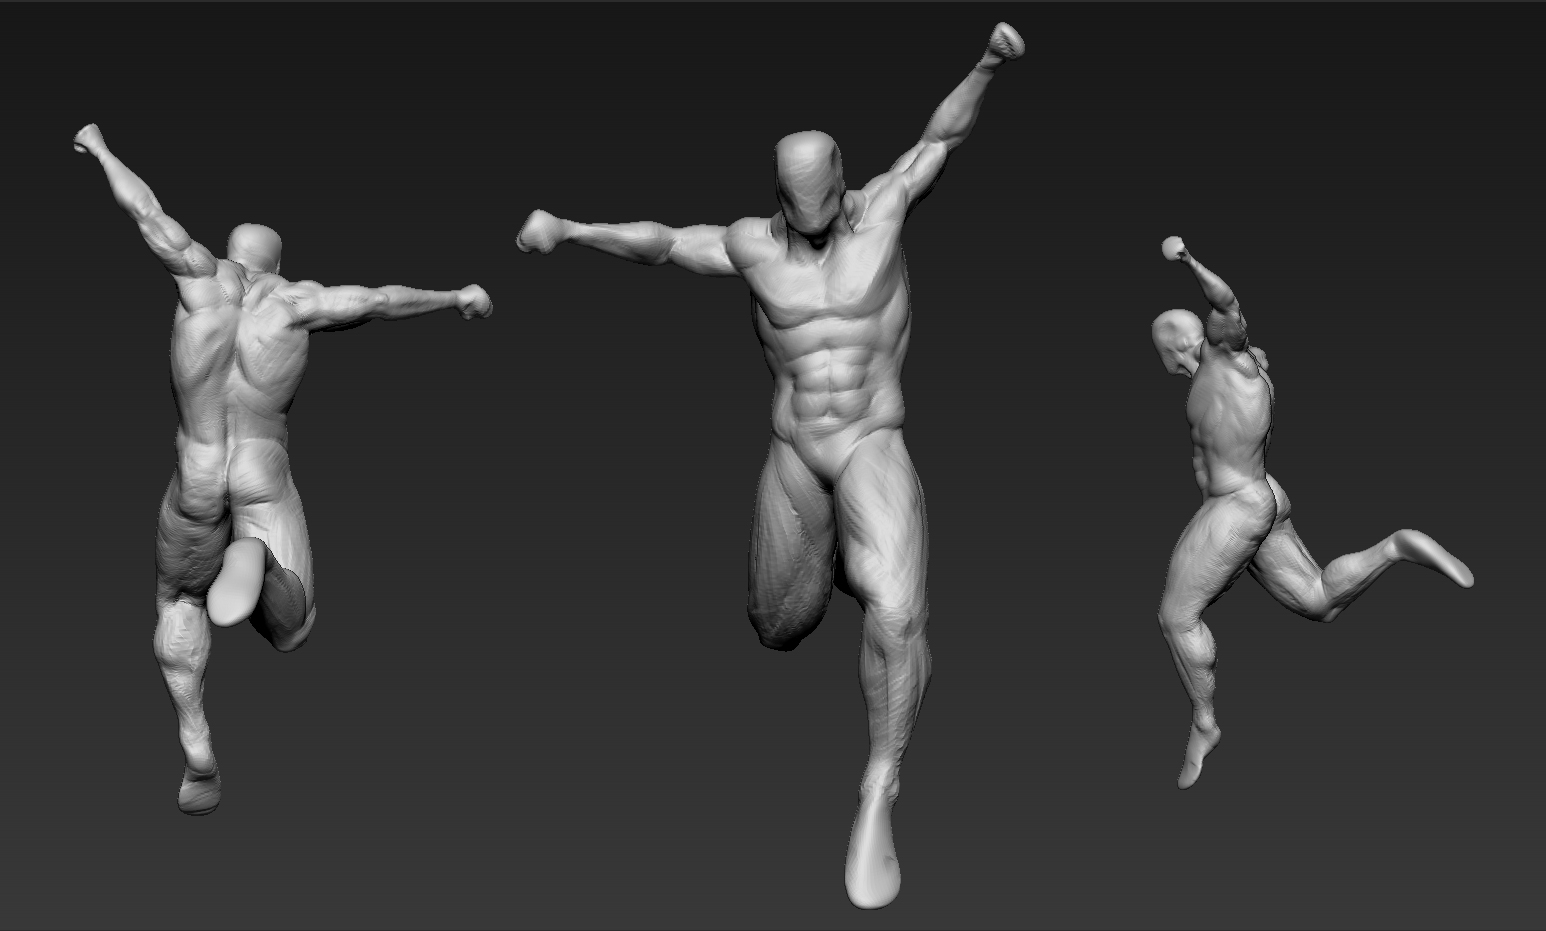 ZBrush-Document.jpg